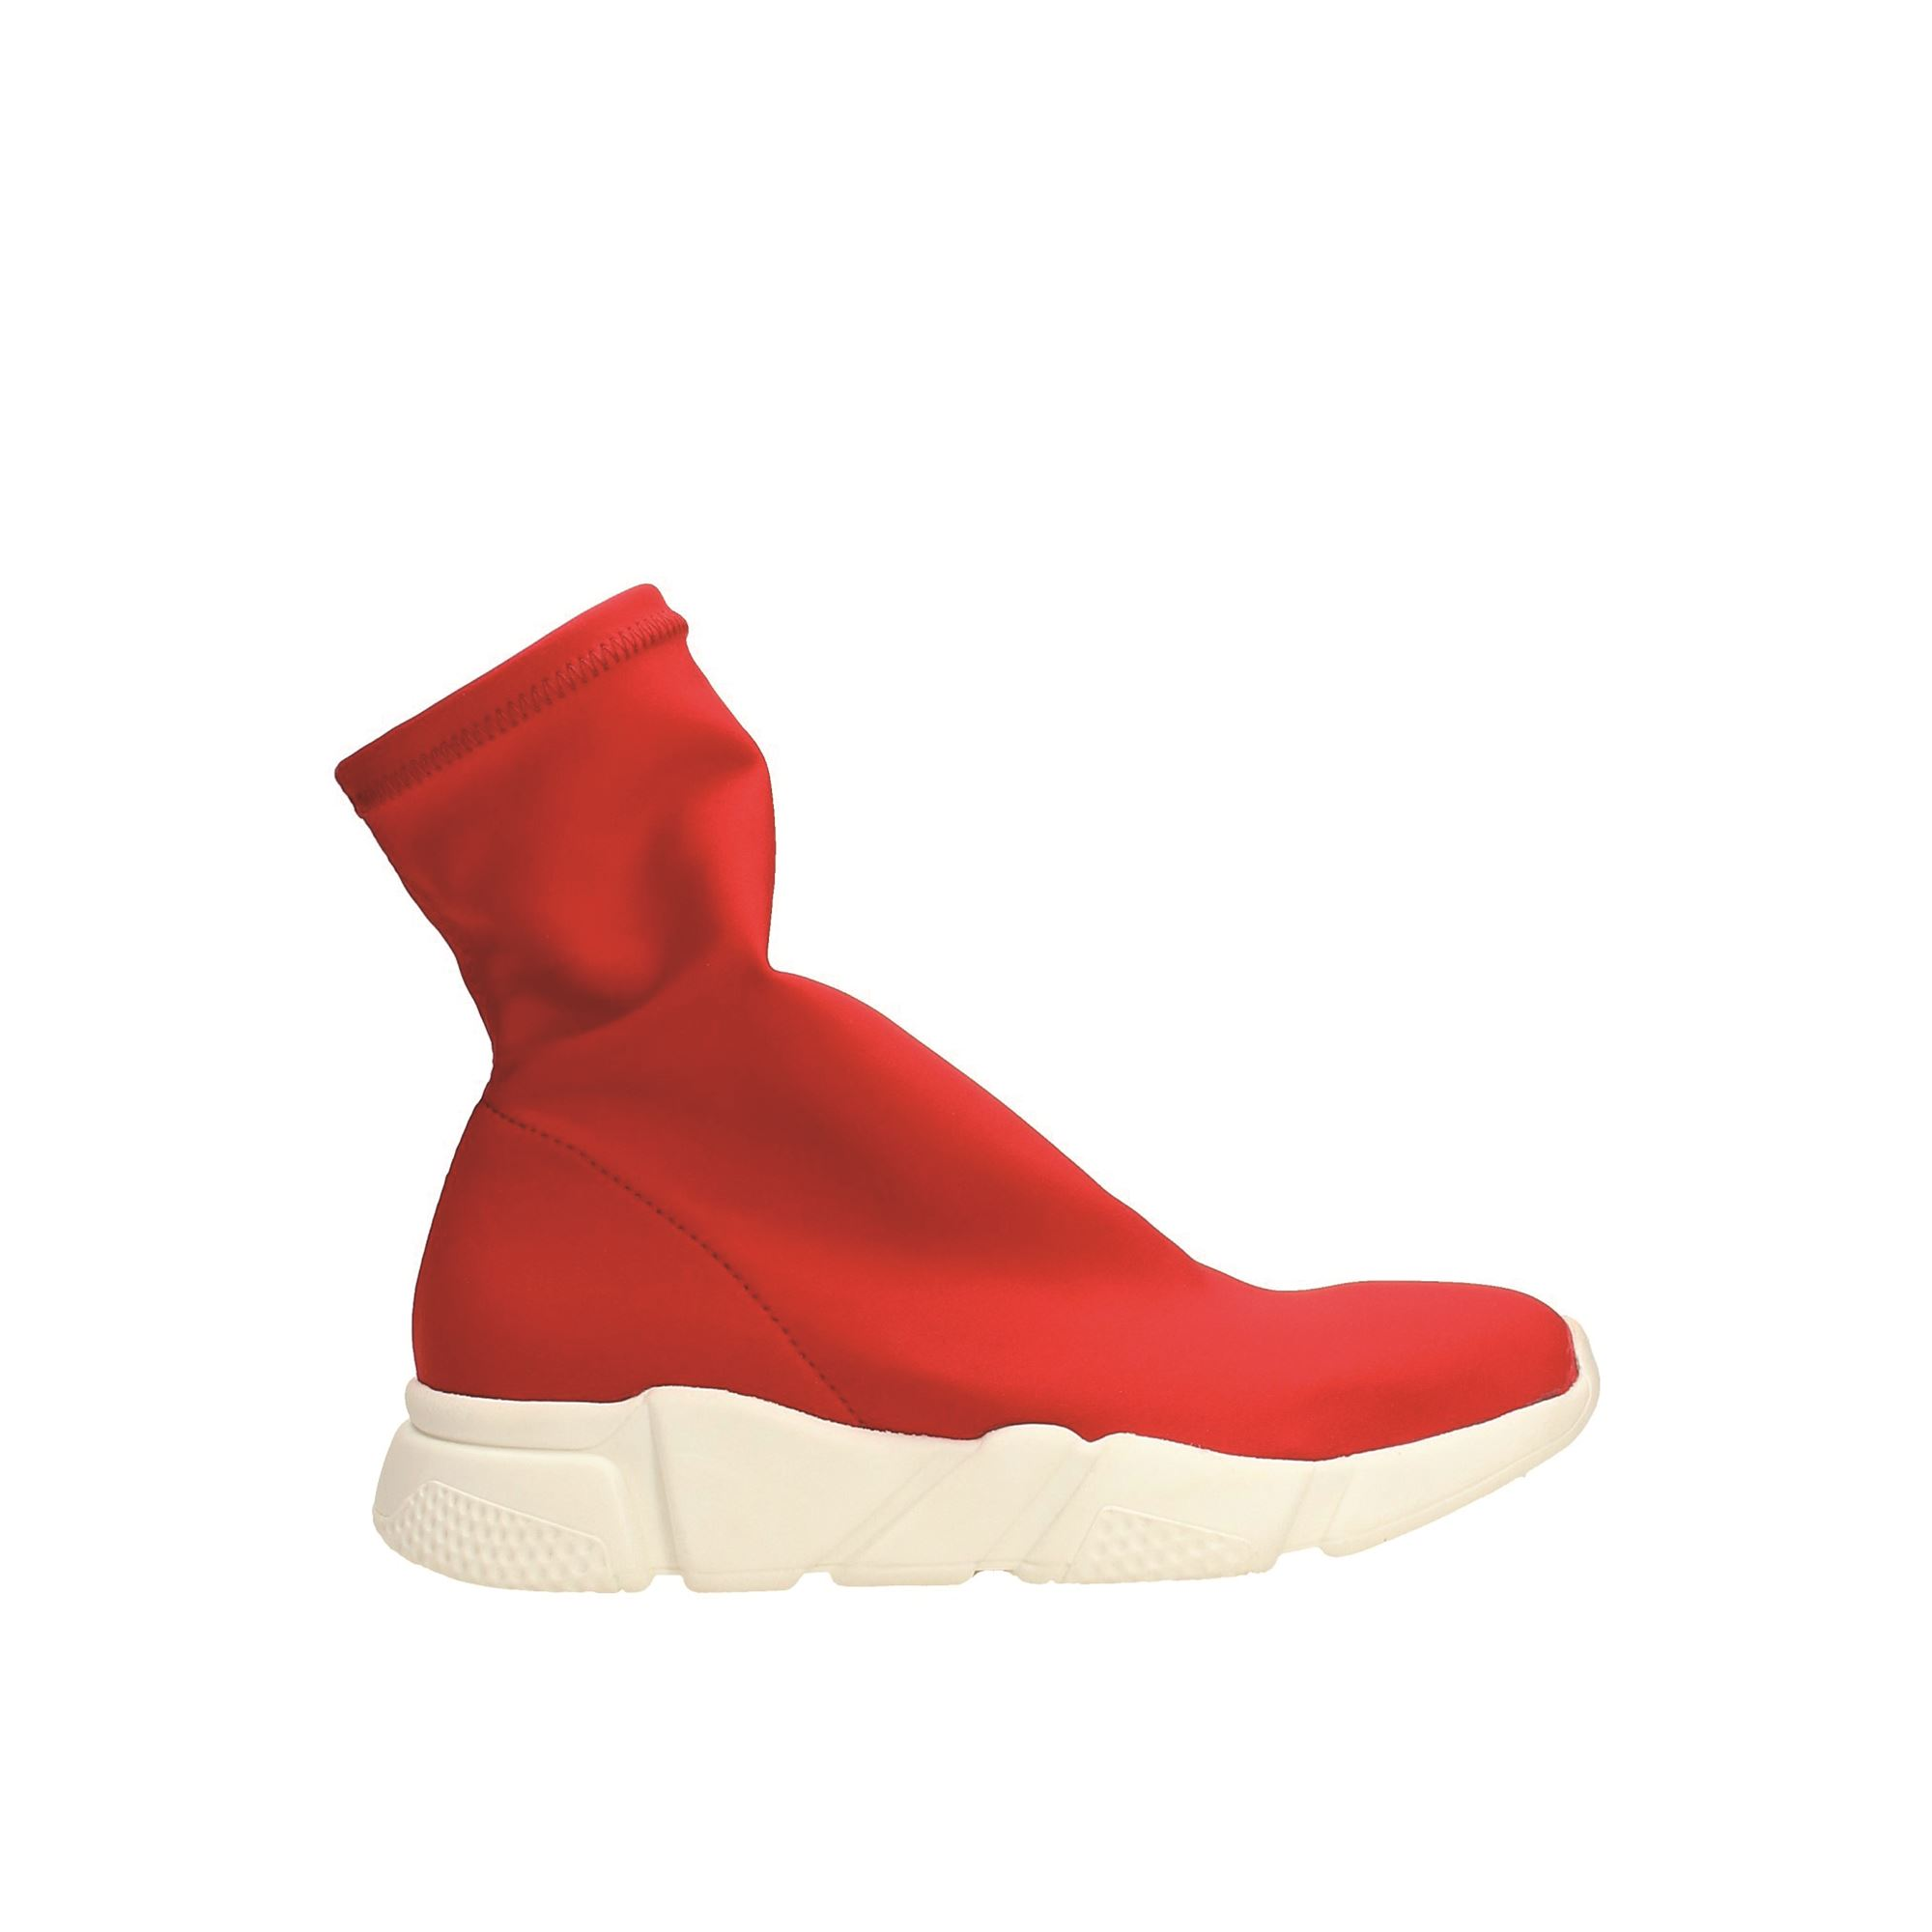 Tata Italia Shoes Woman Sneakers Red 2739T-6